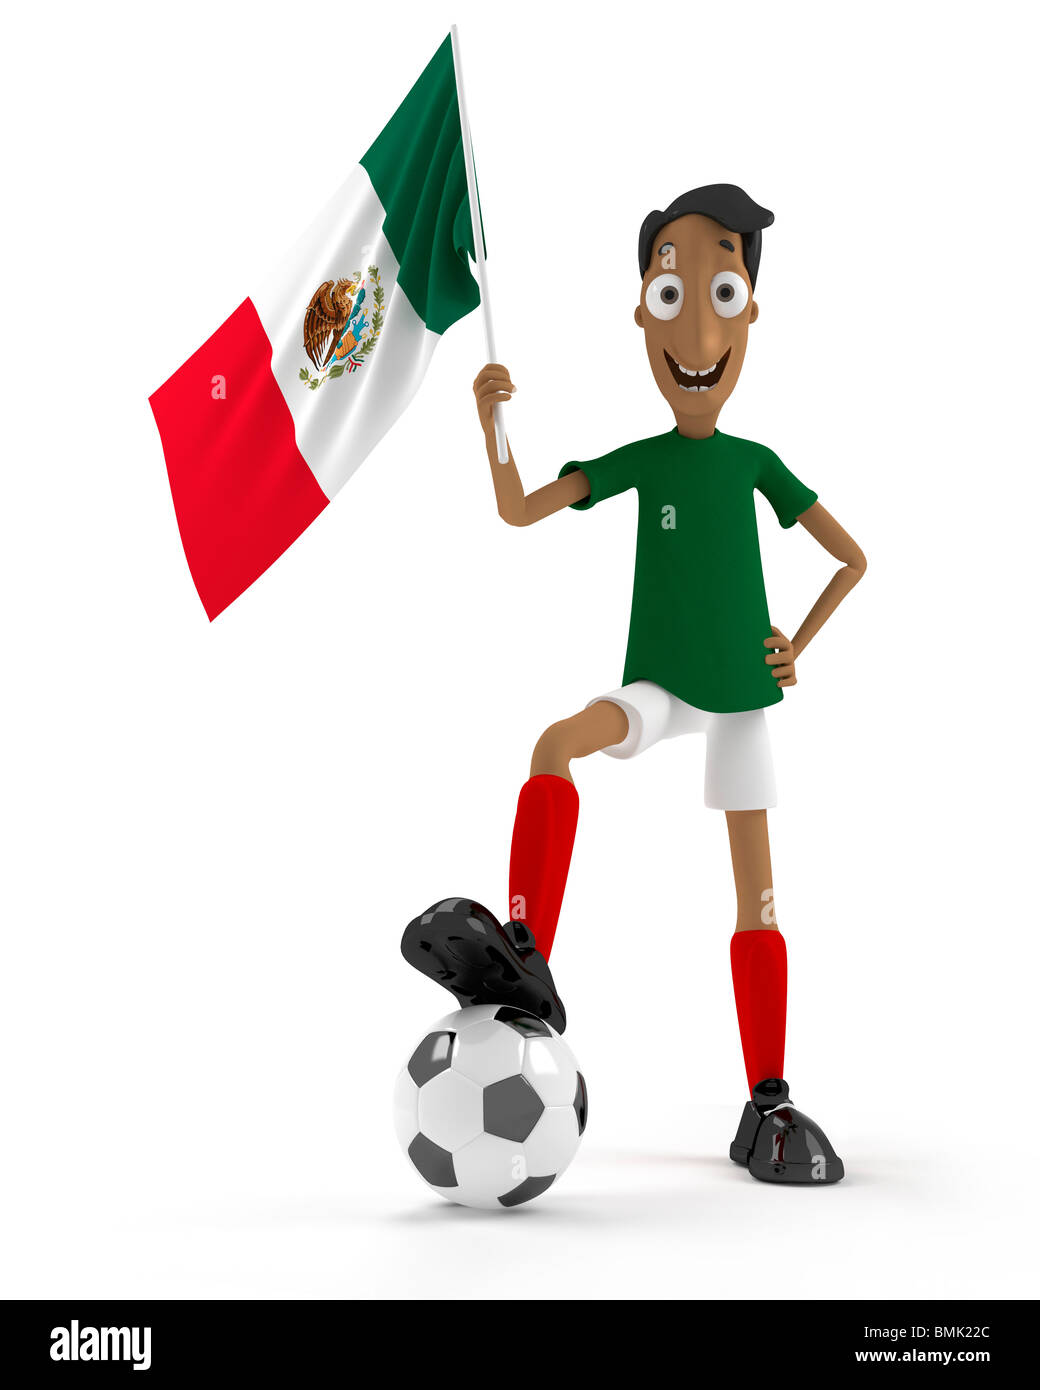 Smiling cartoon style soccer player with ball and Mexico flag - Stock Image